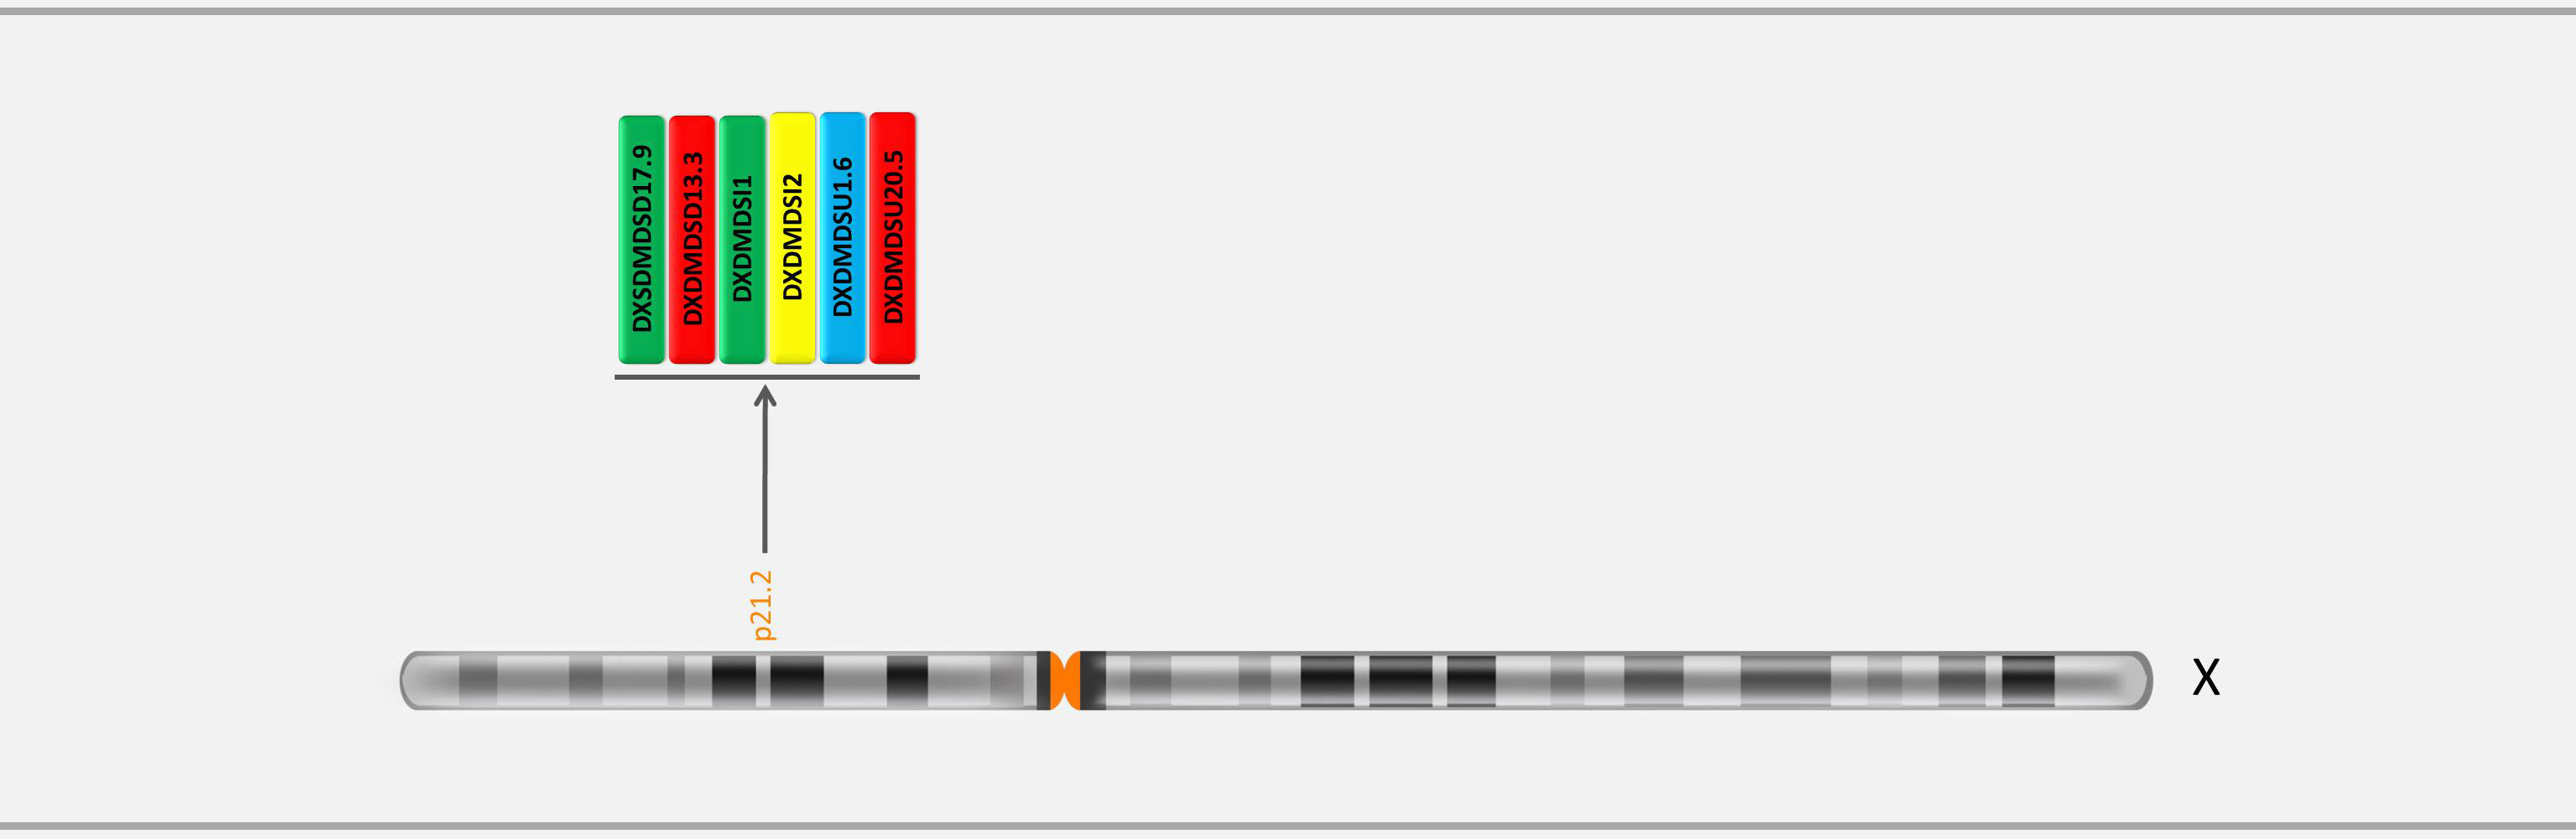 Locations of markers on X chromosome in GTHapScreen DMD 5-dye QF-PCR kit for Duchenne or Becker Muscular Dystrophy diagnosis